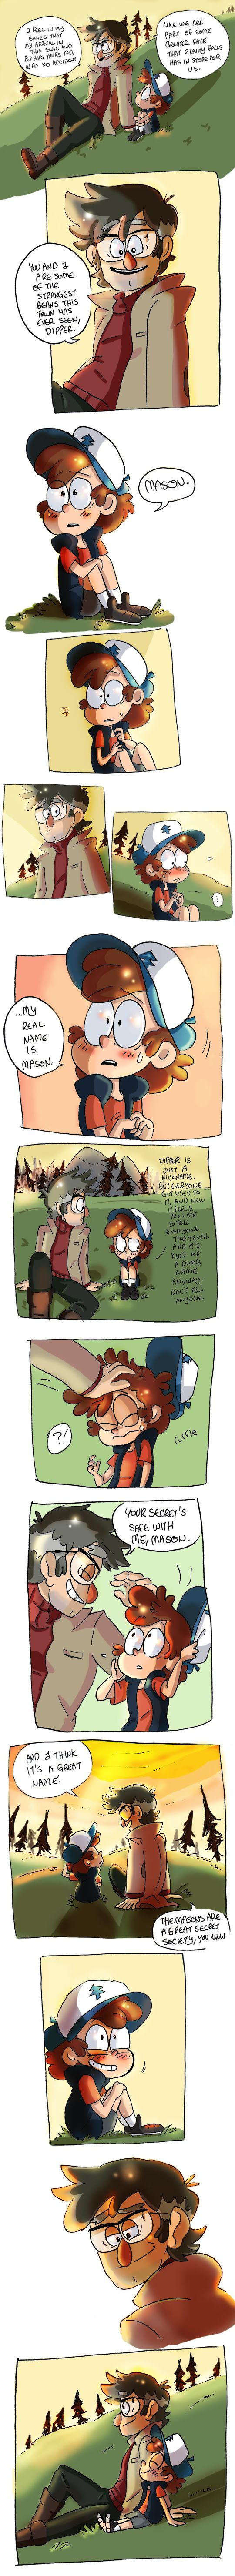 His real name (SPOILERS) by shadowpiratemonkey7 on DeviantArt<<< MY TWO NERDS. So proud.